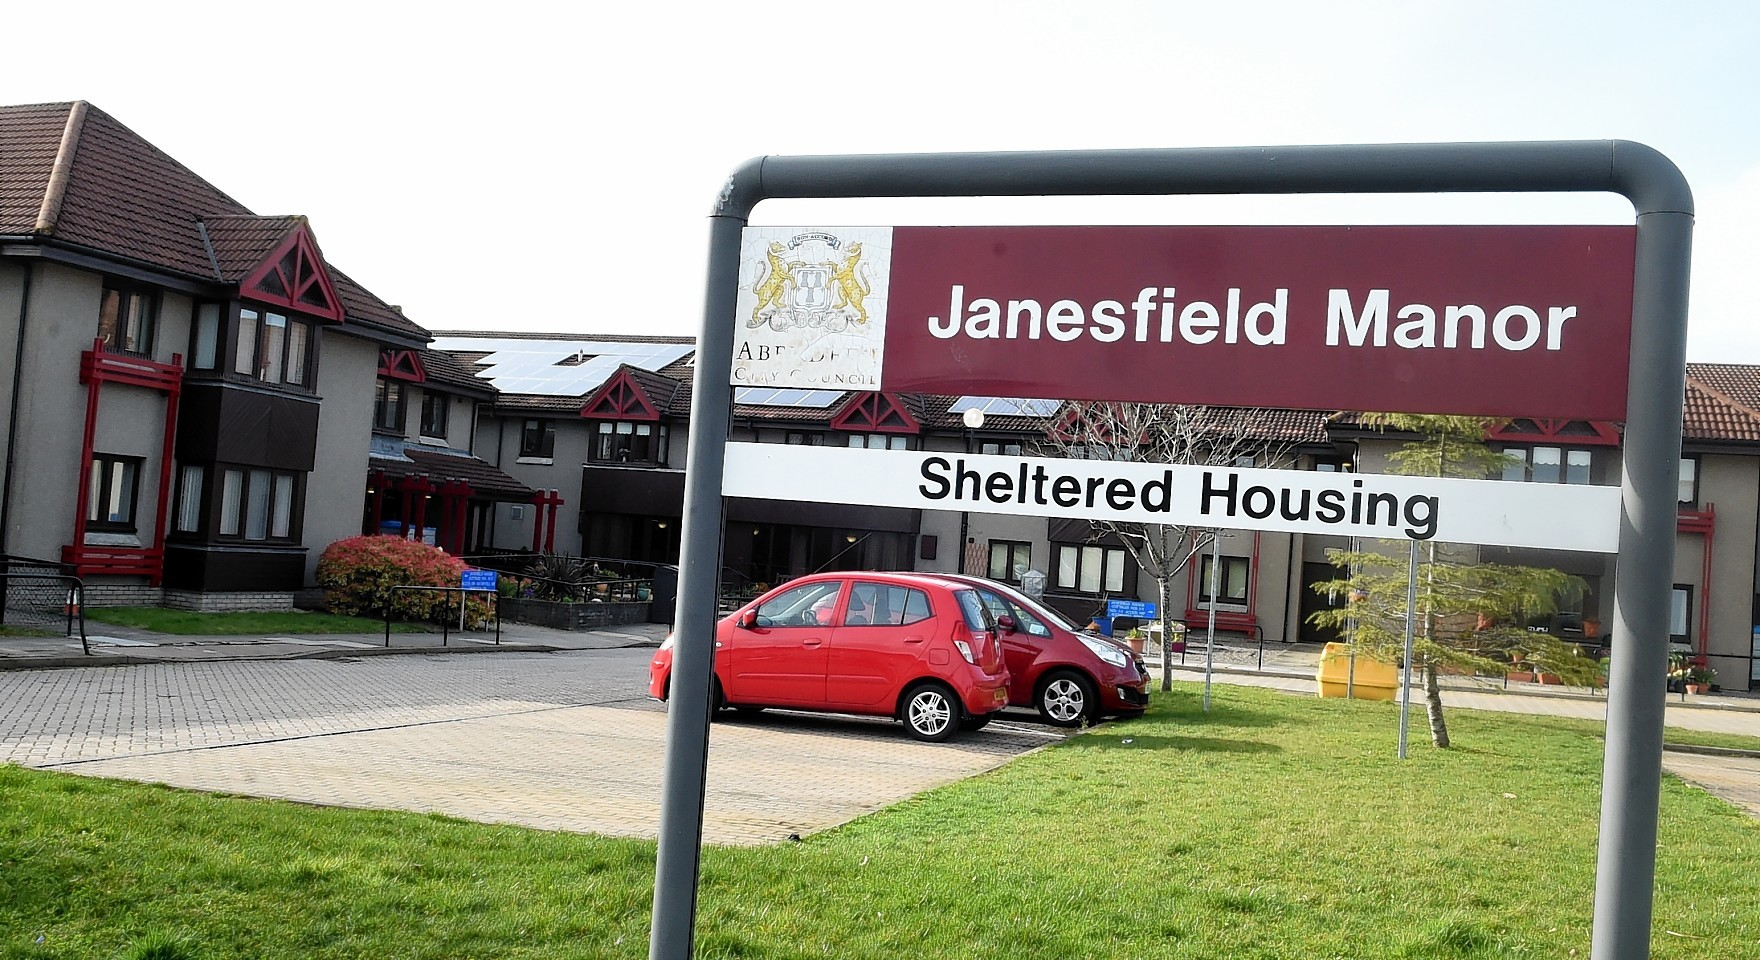 Lockdown restrictions will be eased at sheltered housing complexes like Janesfield Manor